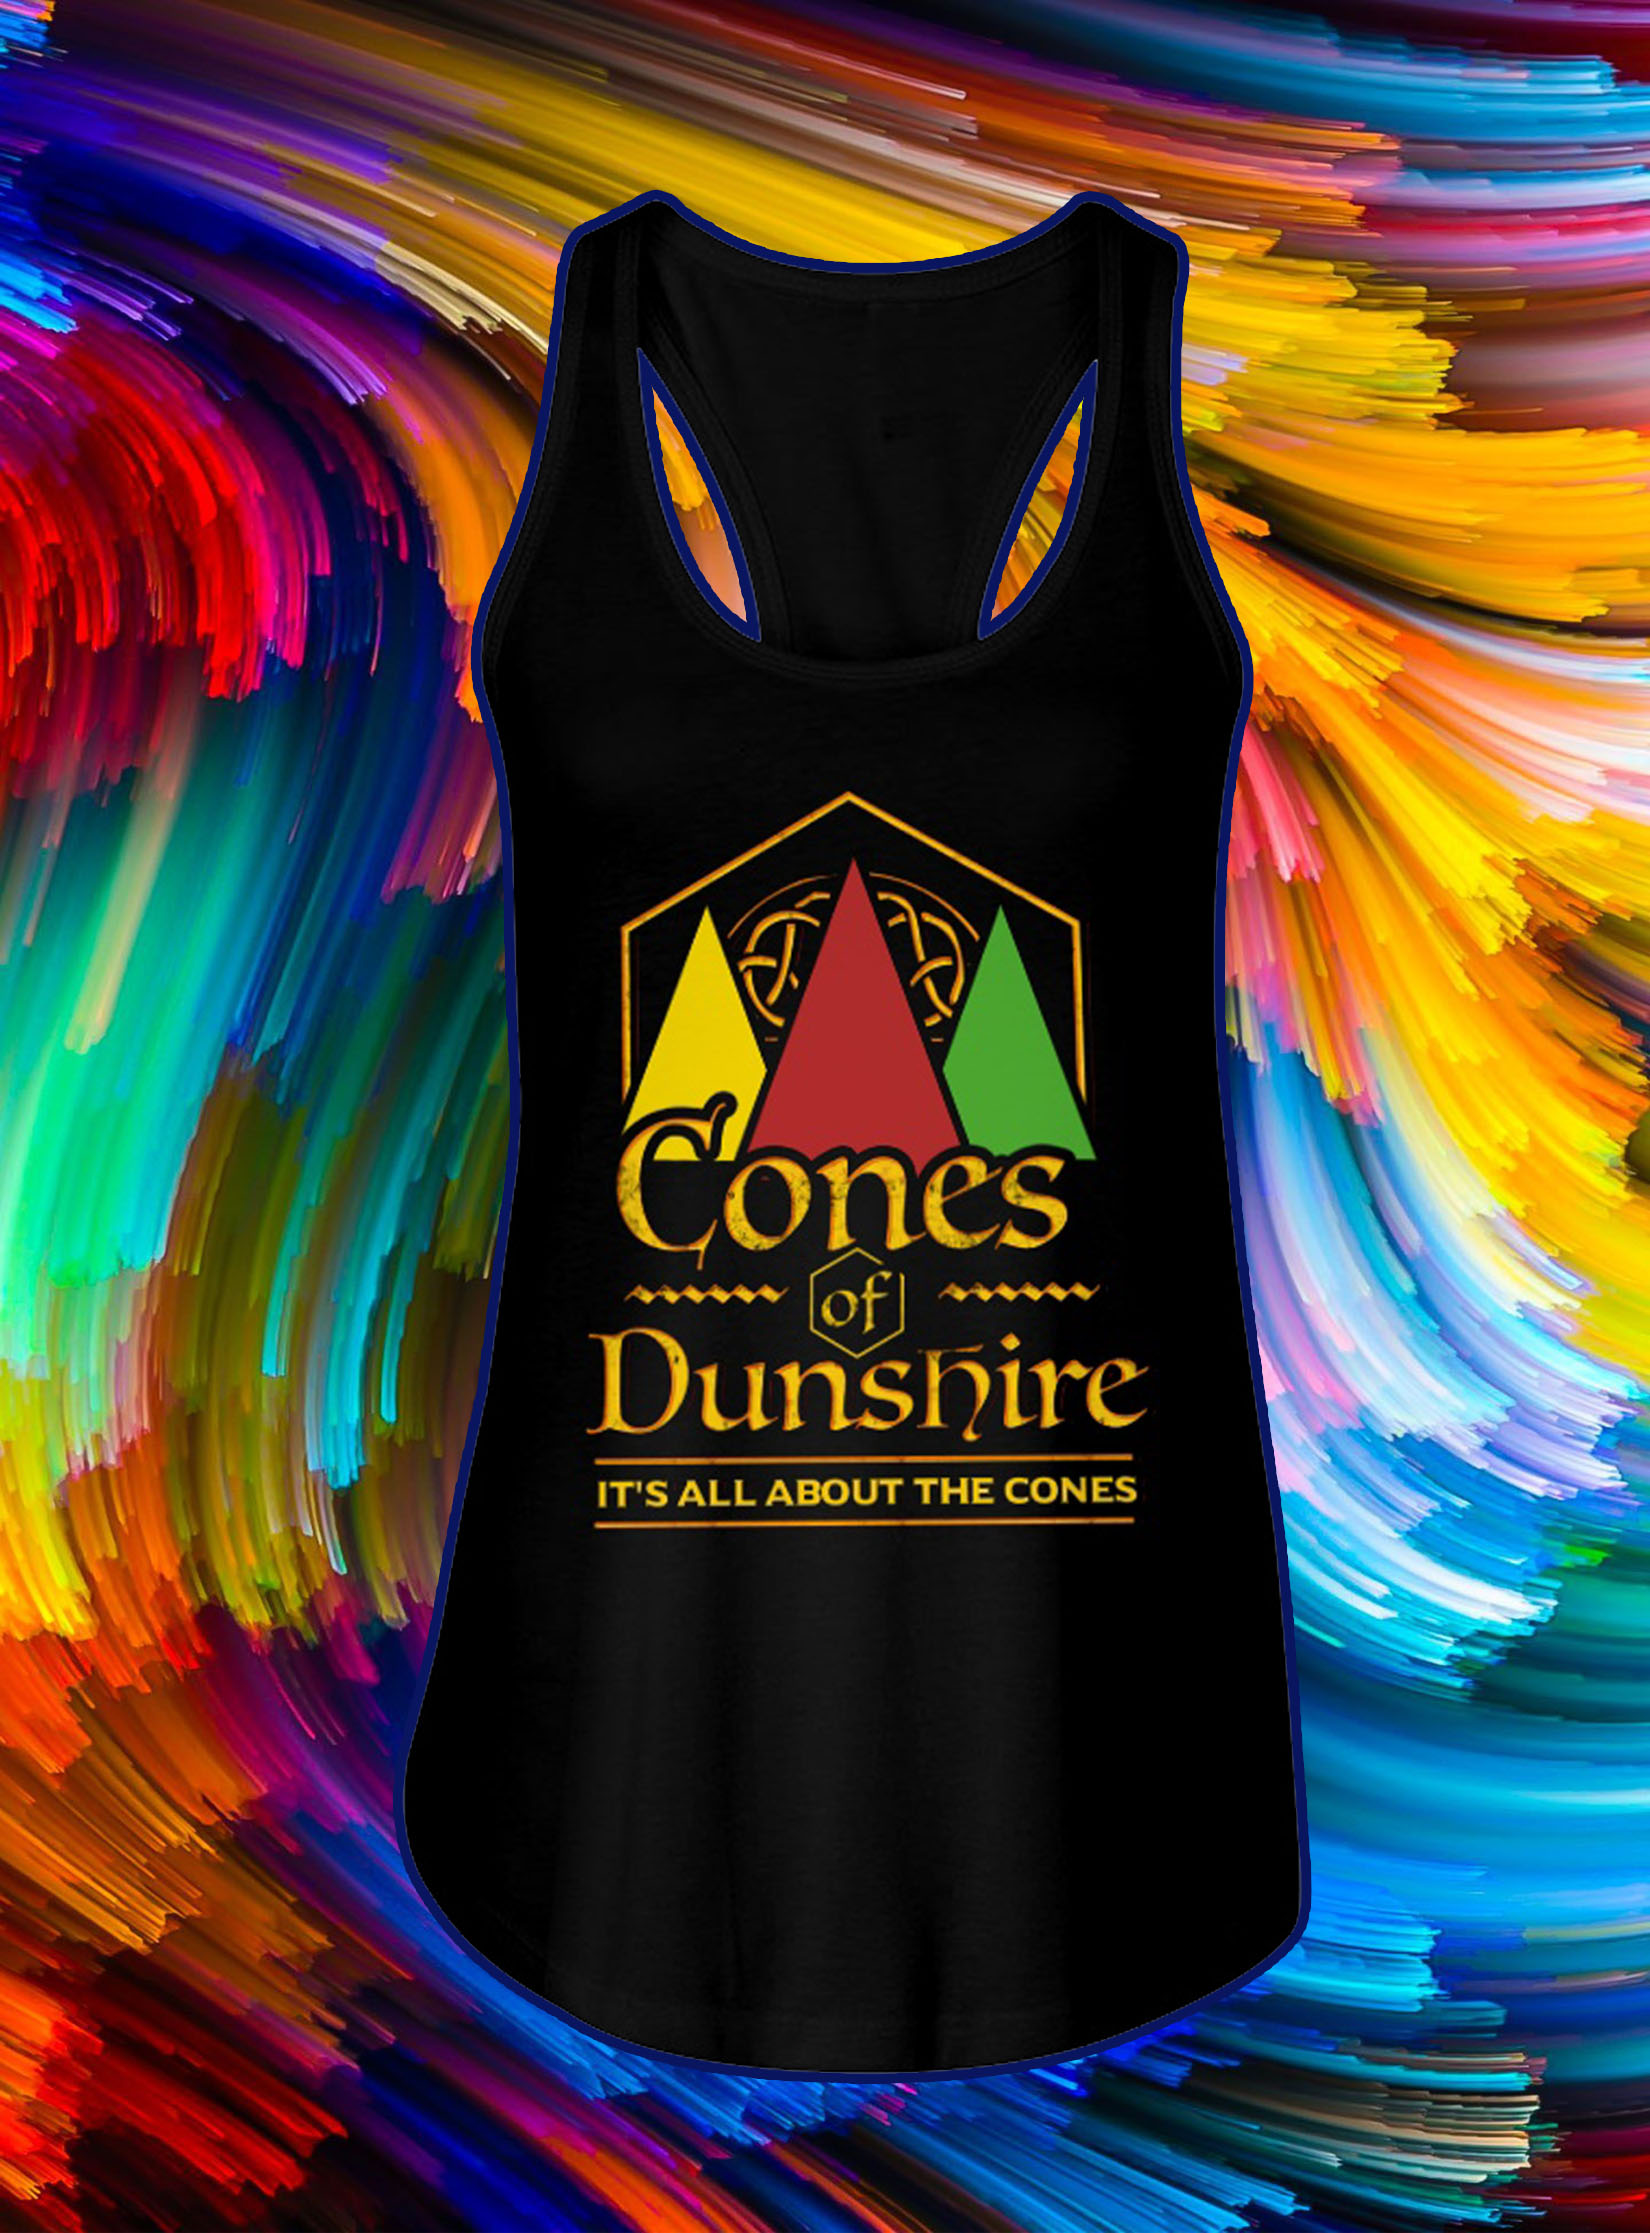 Cones of dunshire it's all about the cones tank top